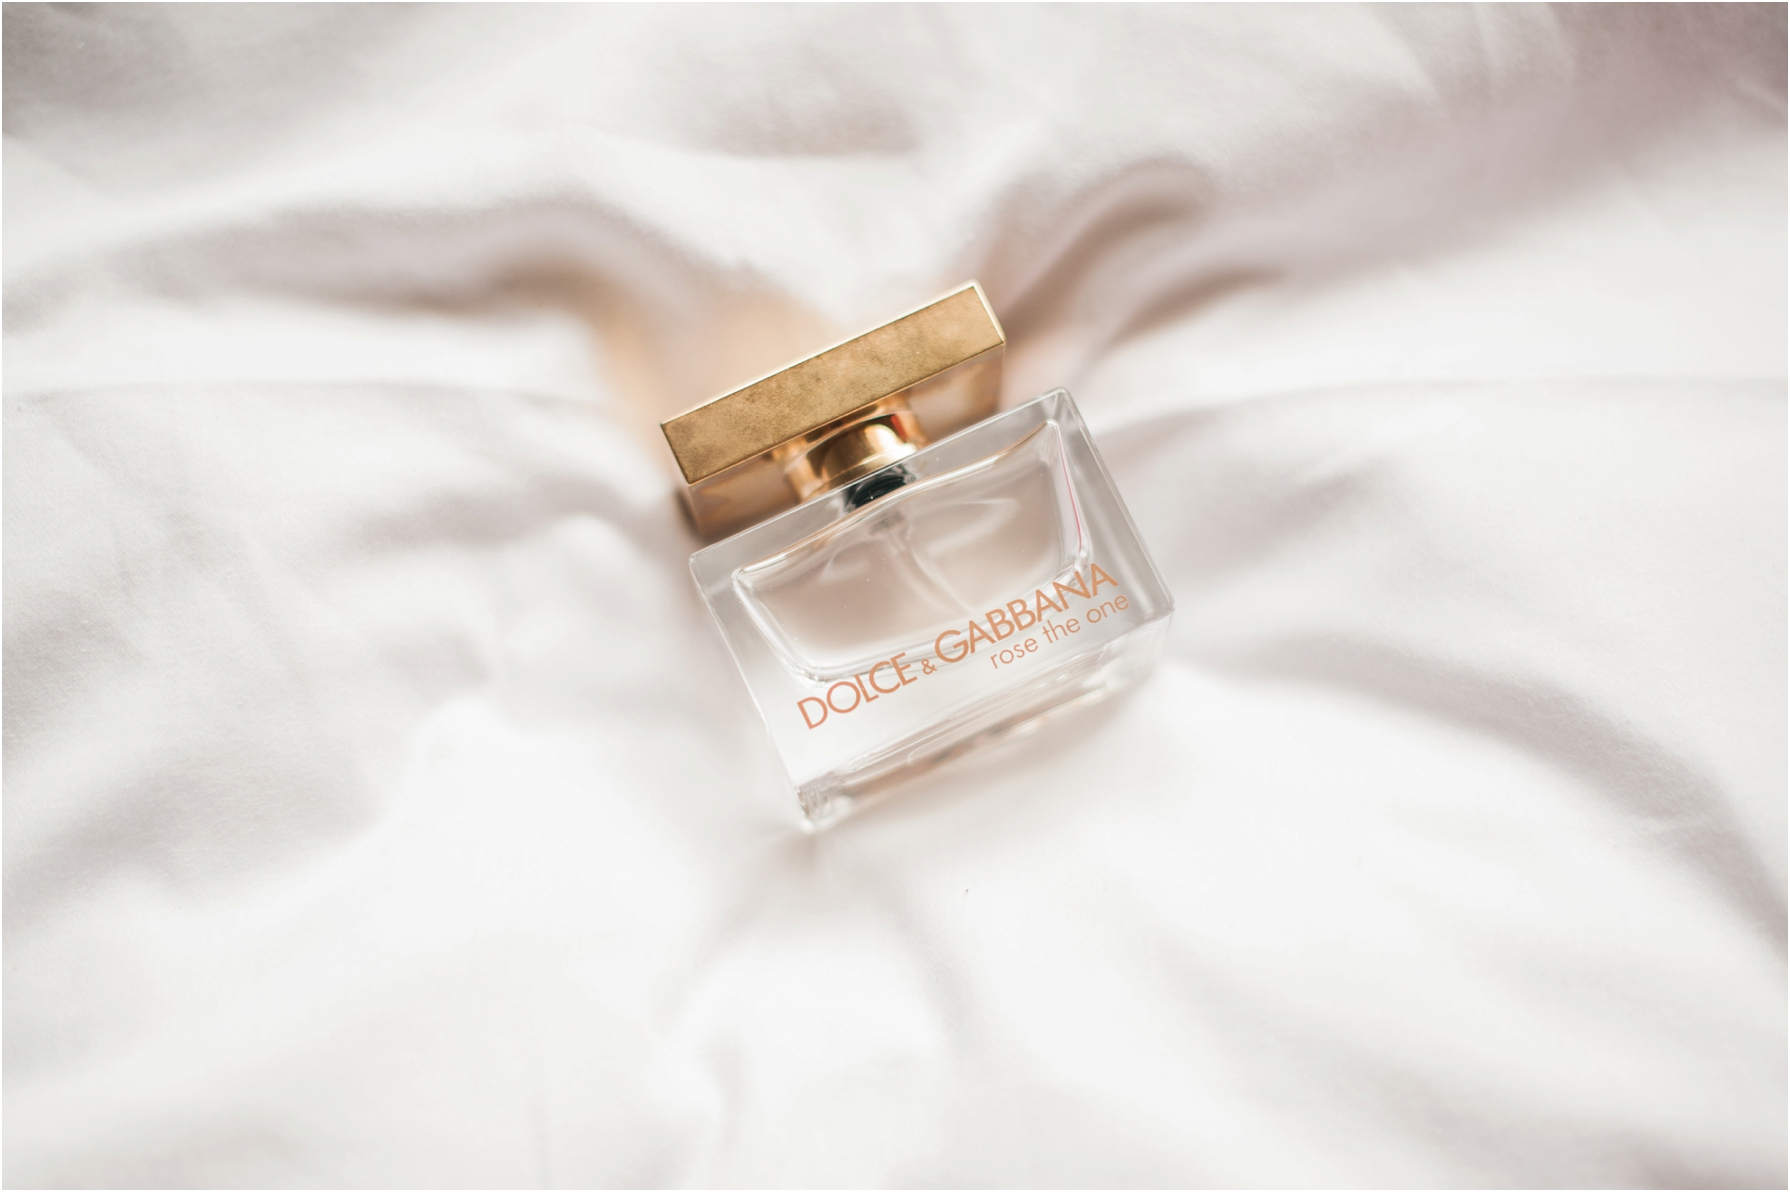 brides perfume bottle laid out on a white bed sheet